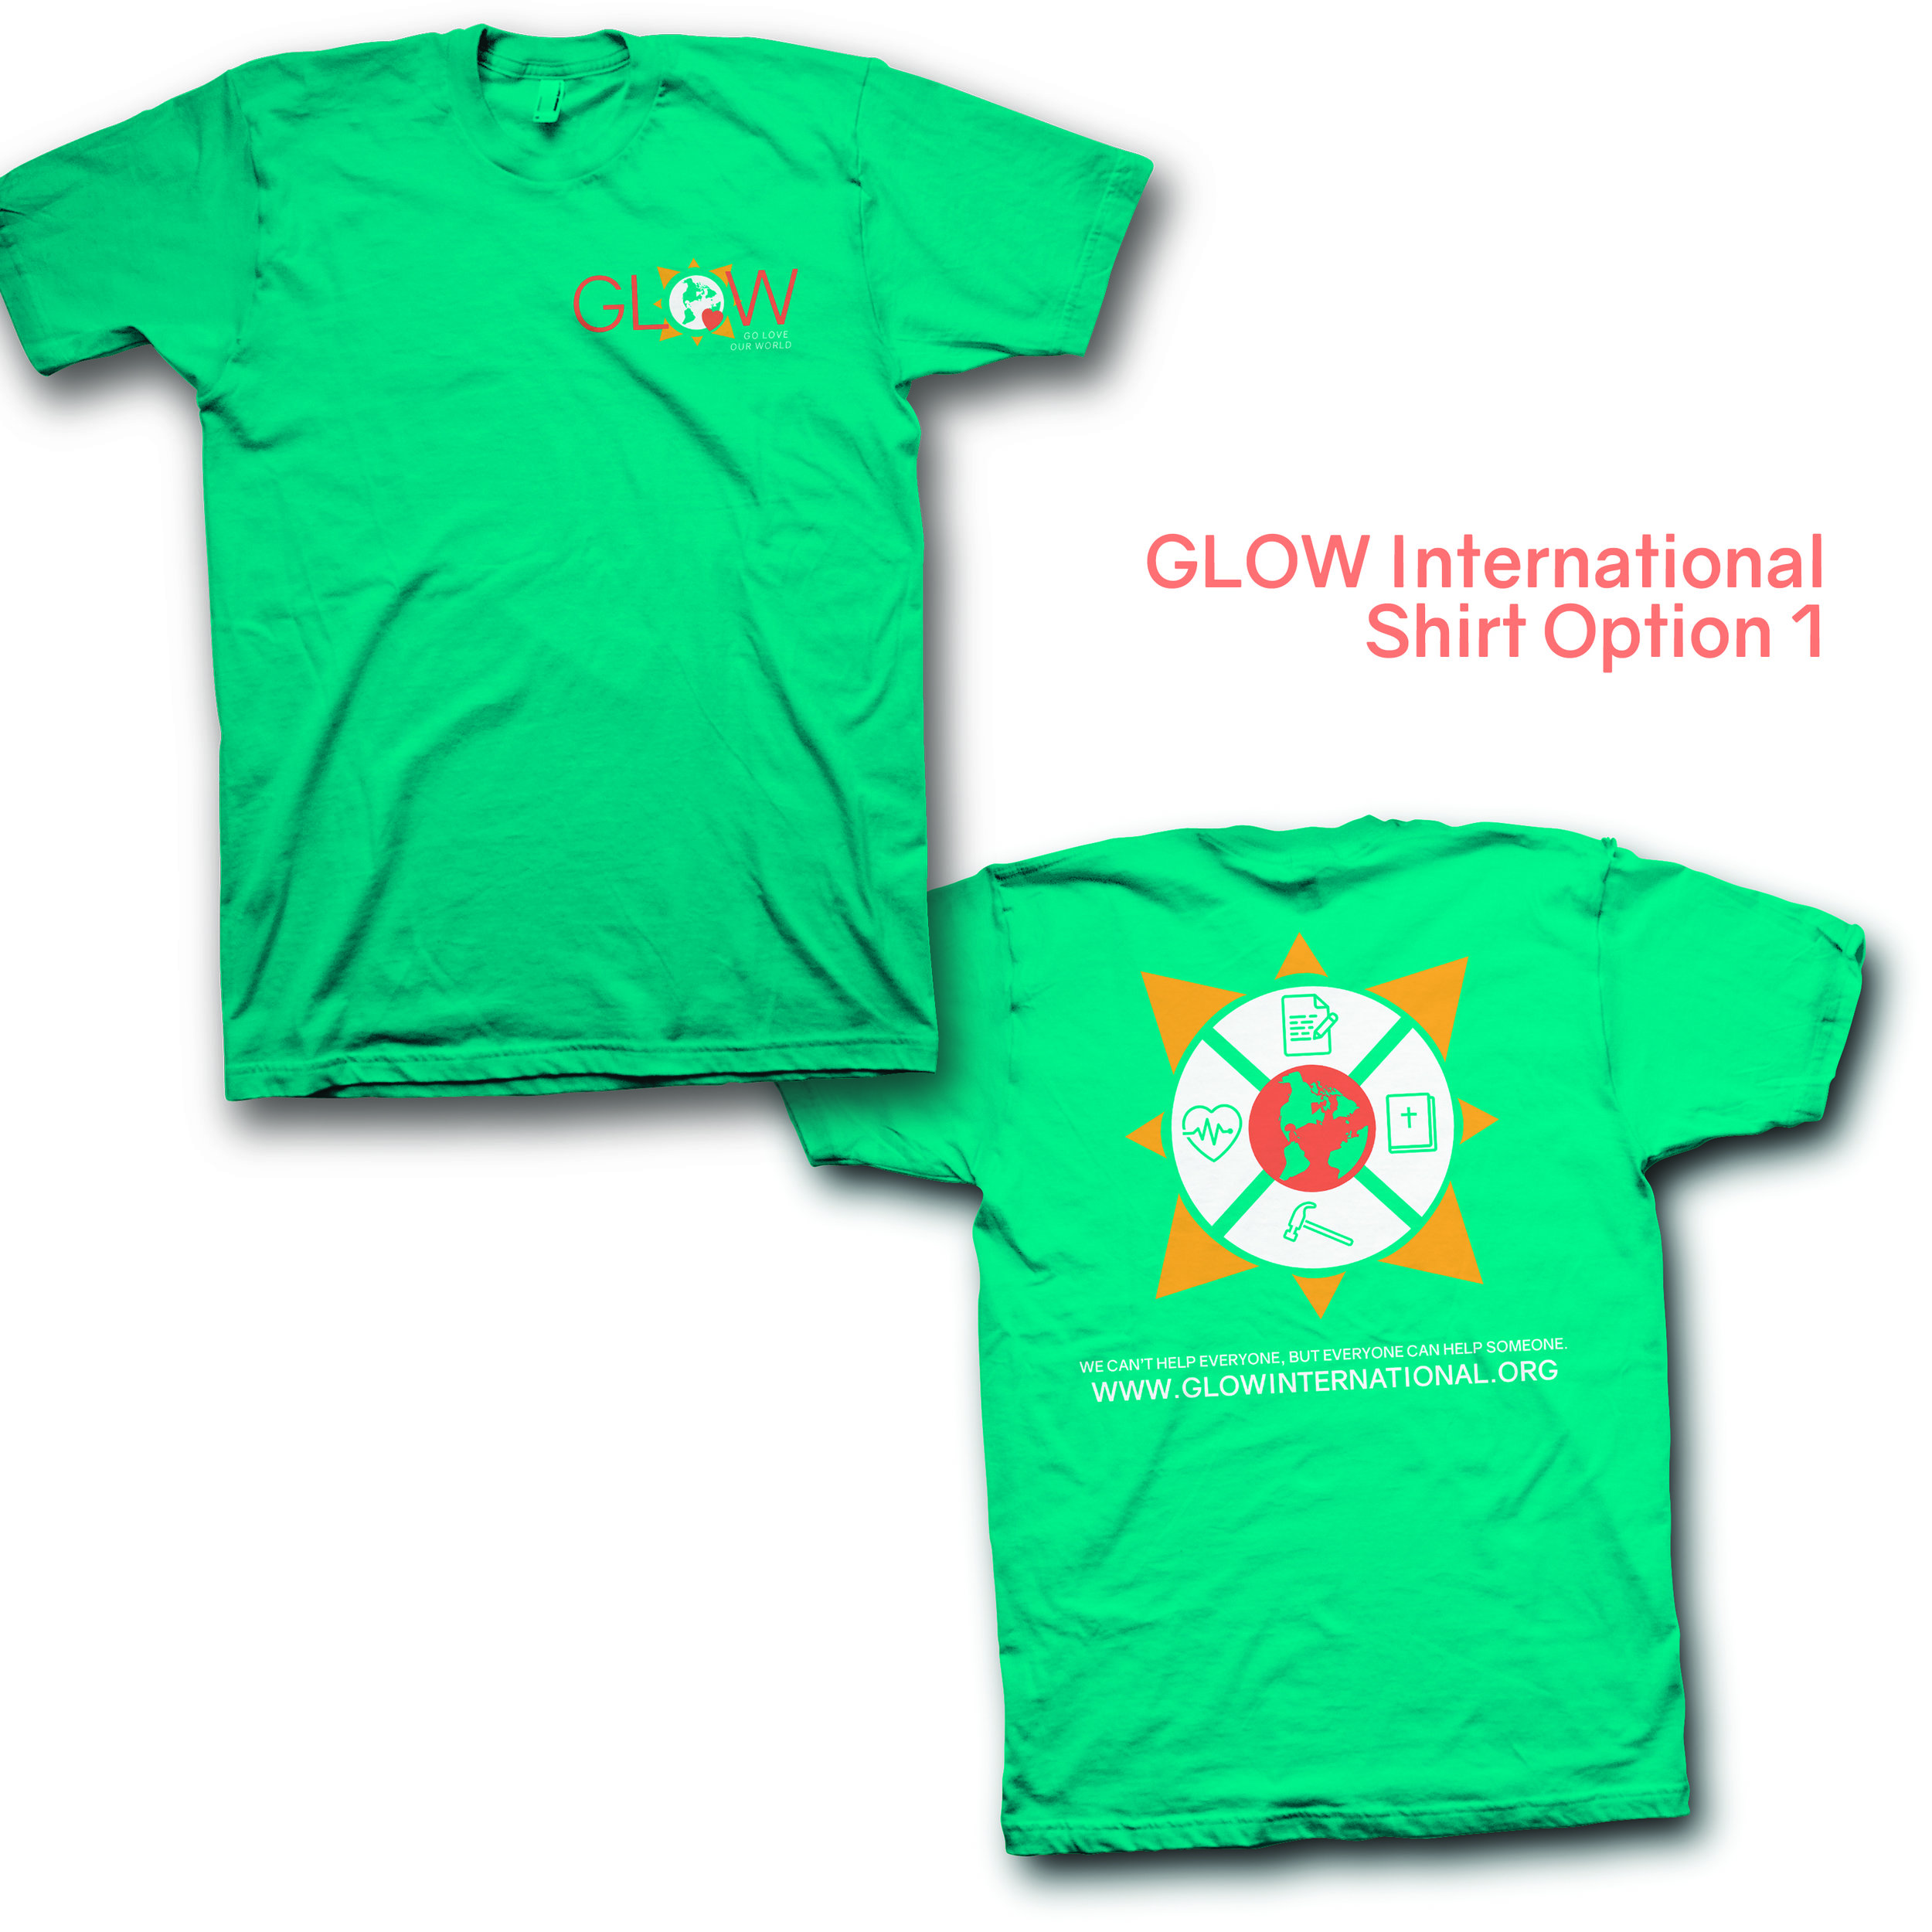 GLOW International Shirt Design 1.jpg